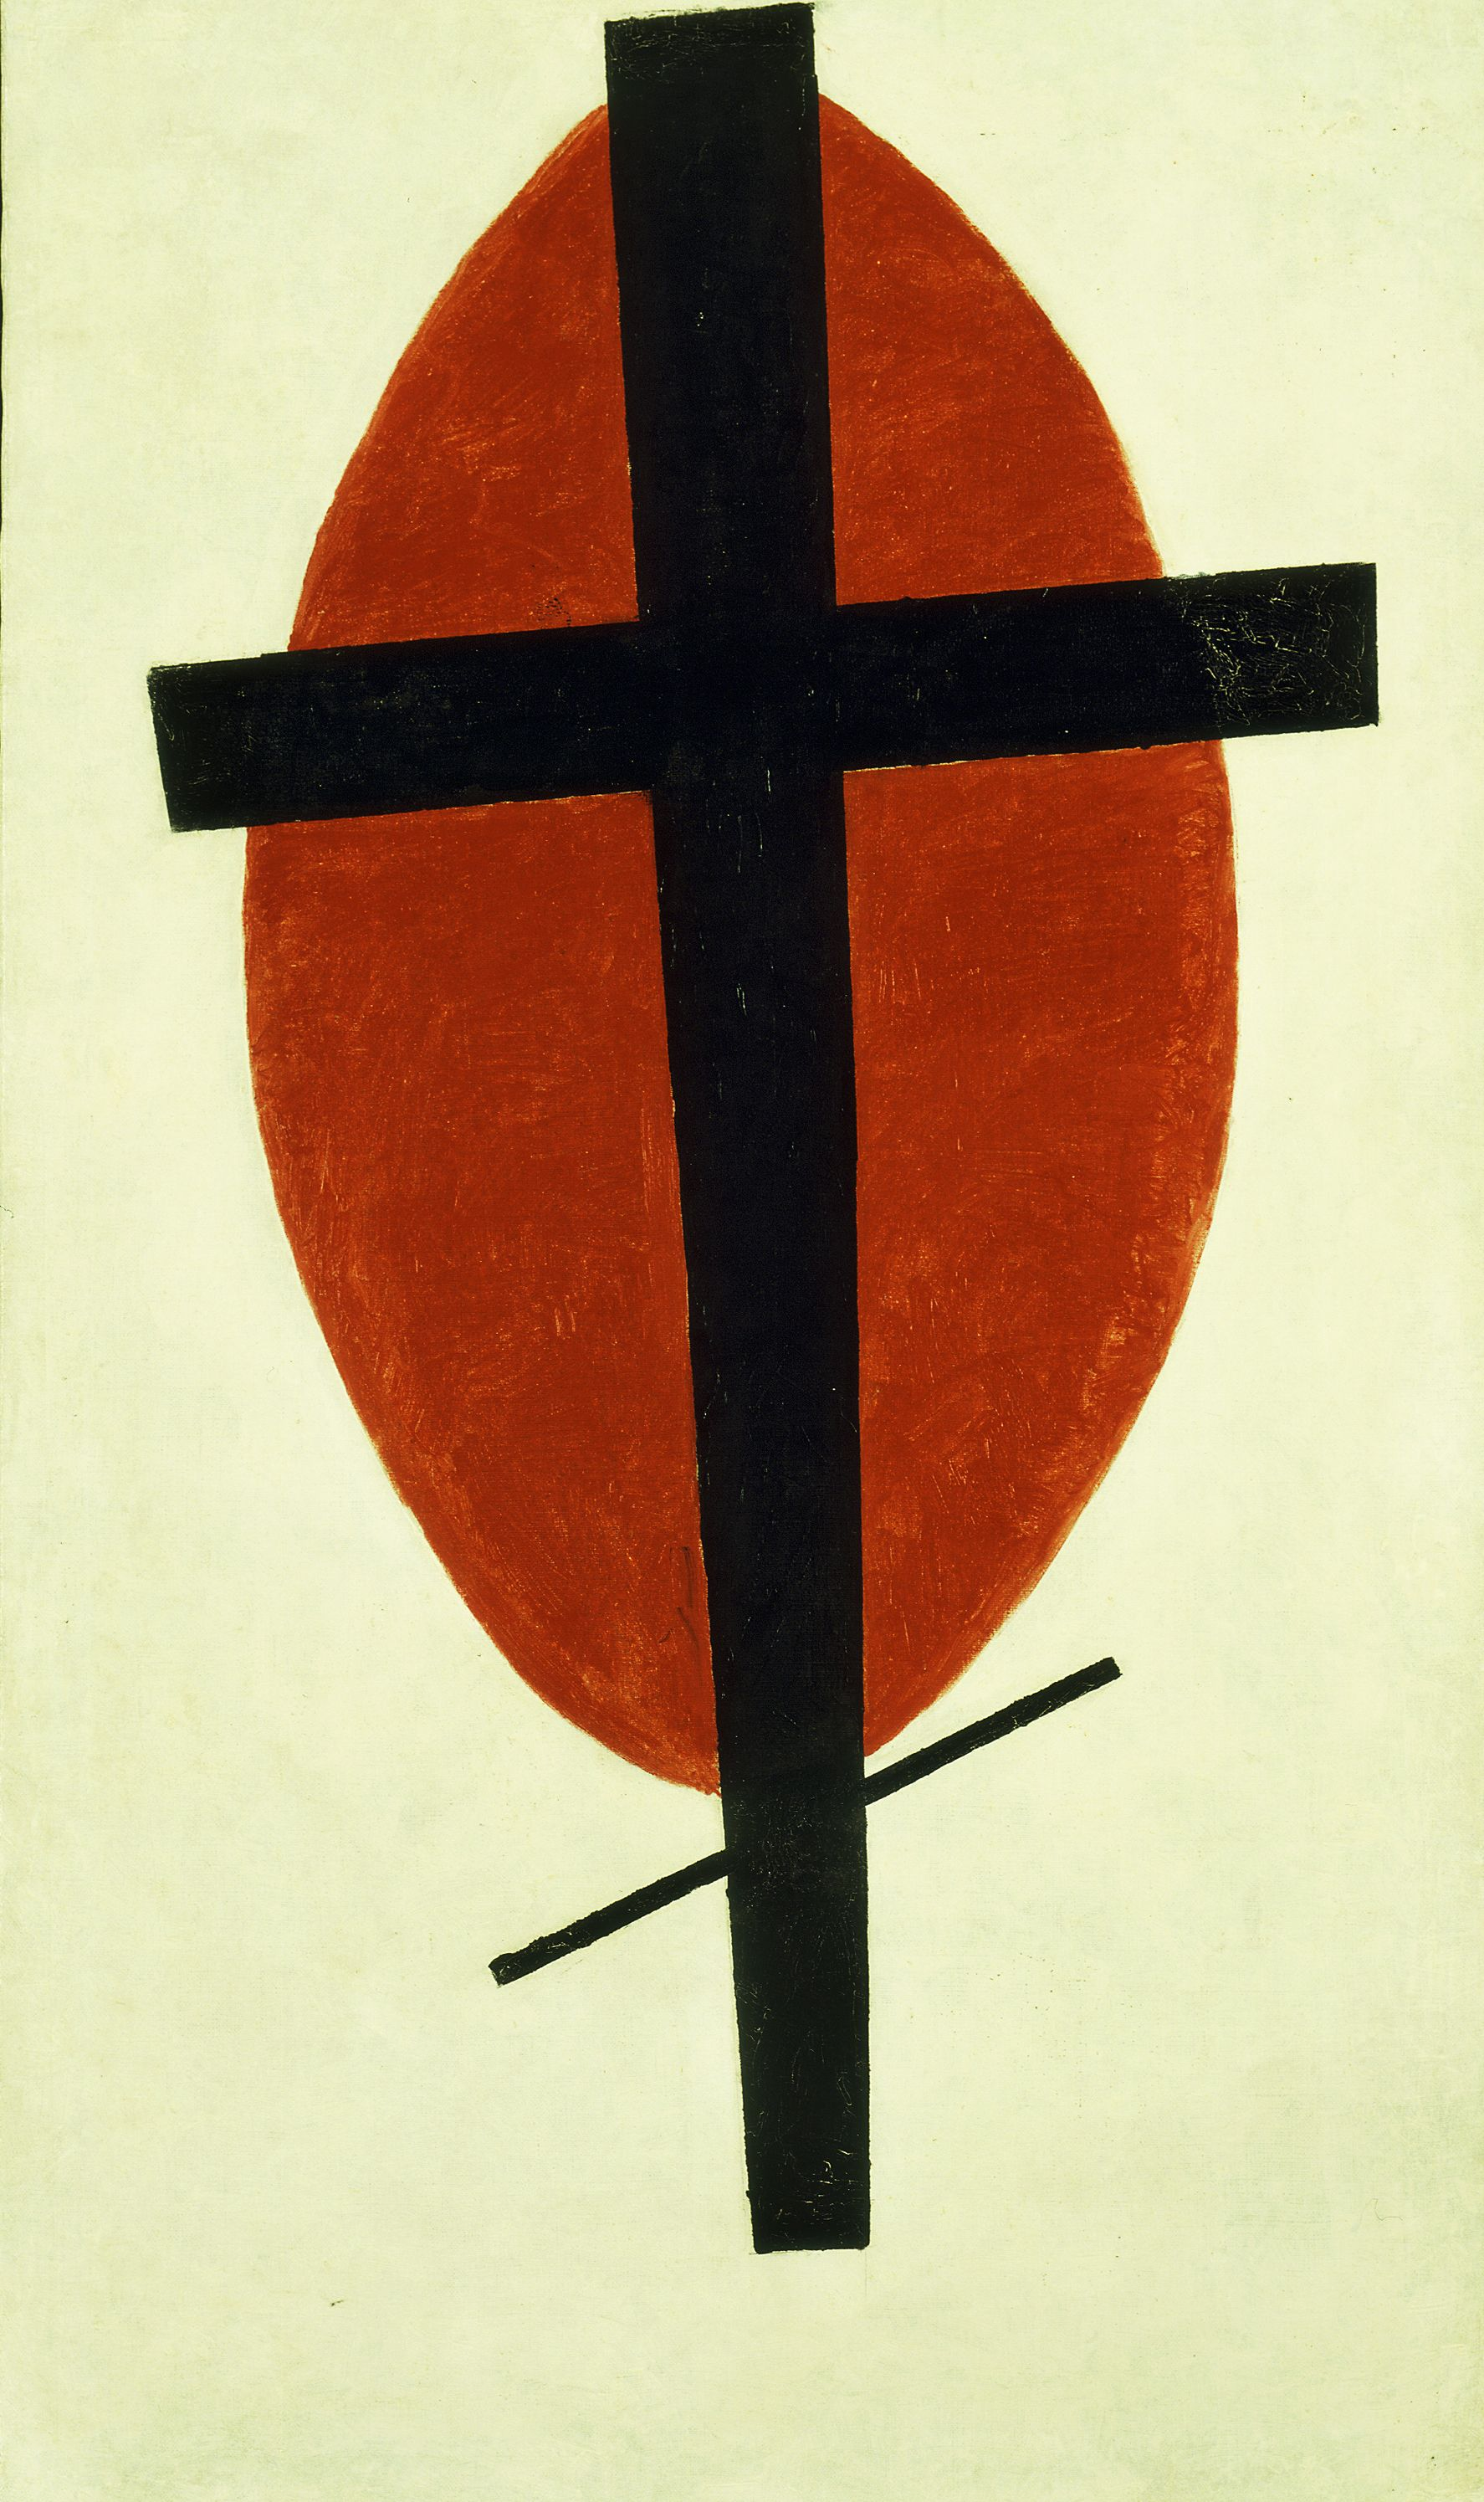 Malevich-Mystic-Suprematism-Black-Cross-and-Red-Oval-1920-22.jpg 1,774×2,990 pixels